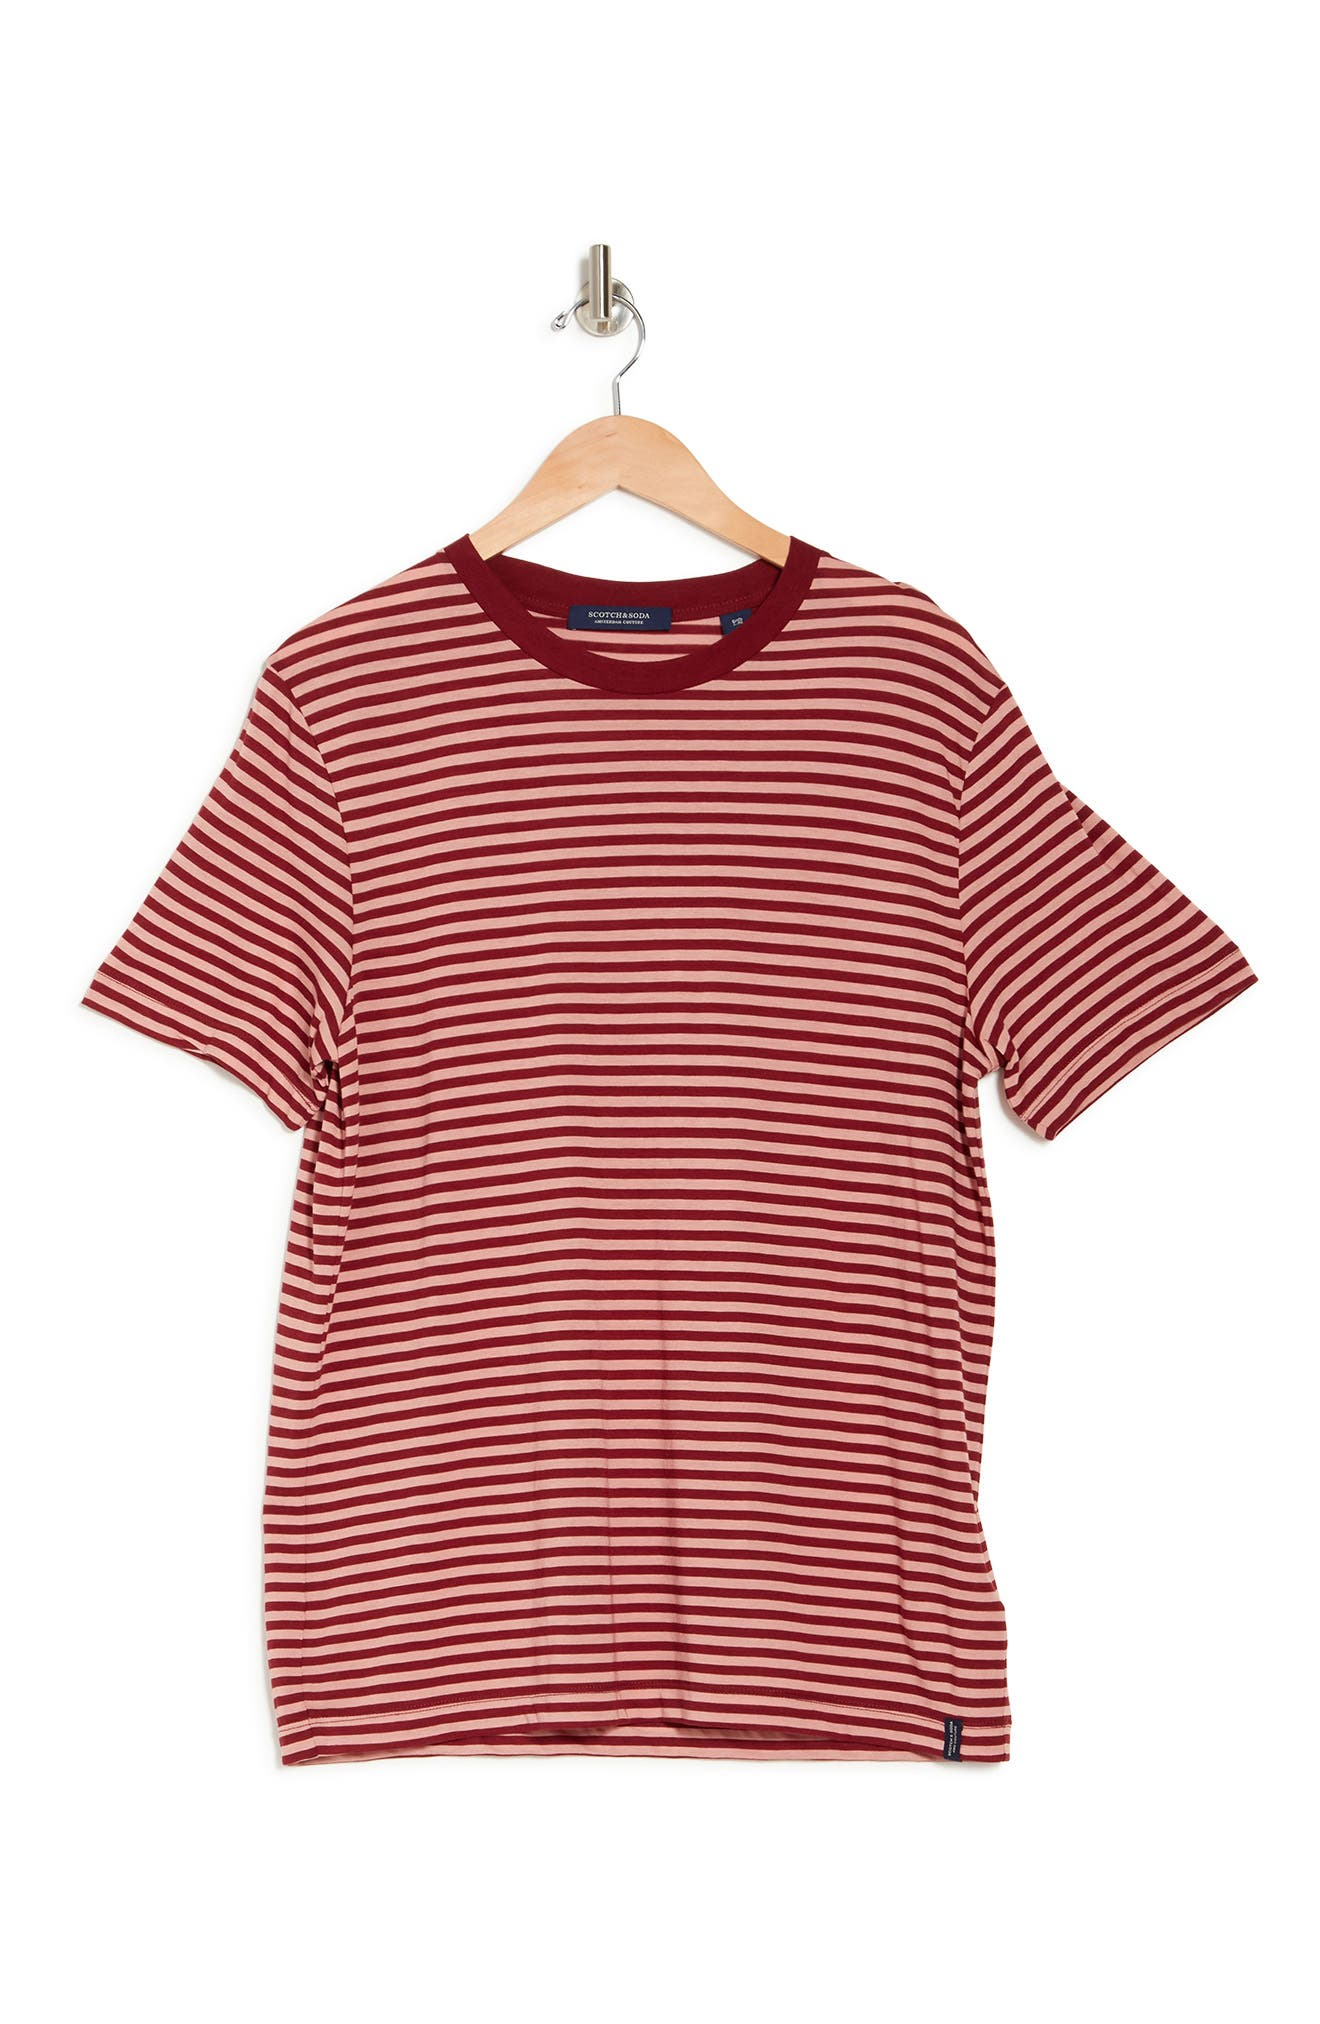 1940s Men's Fashion, Clothing Styles SCOTCH AND SODA Stripe Slim Fit T-Shirt Size Xx-Large in Combo A at Nordstrom Rack $34.97 AT vintagedancer.com